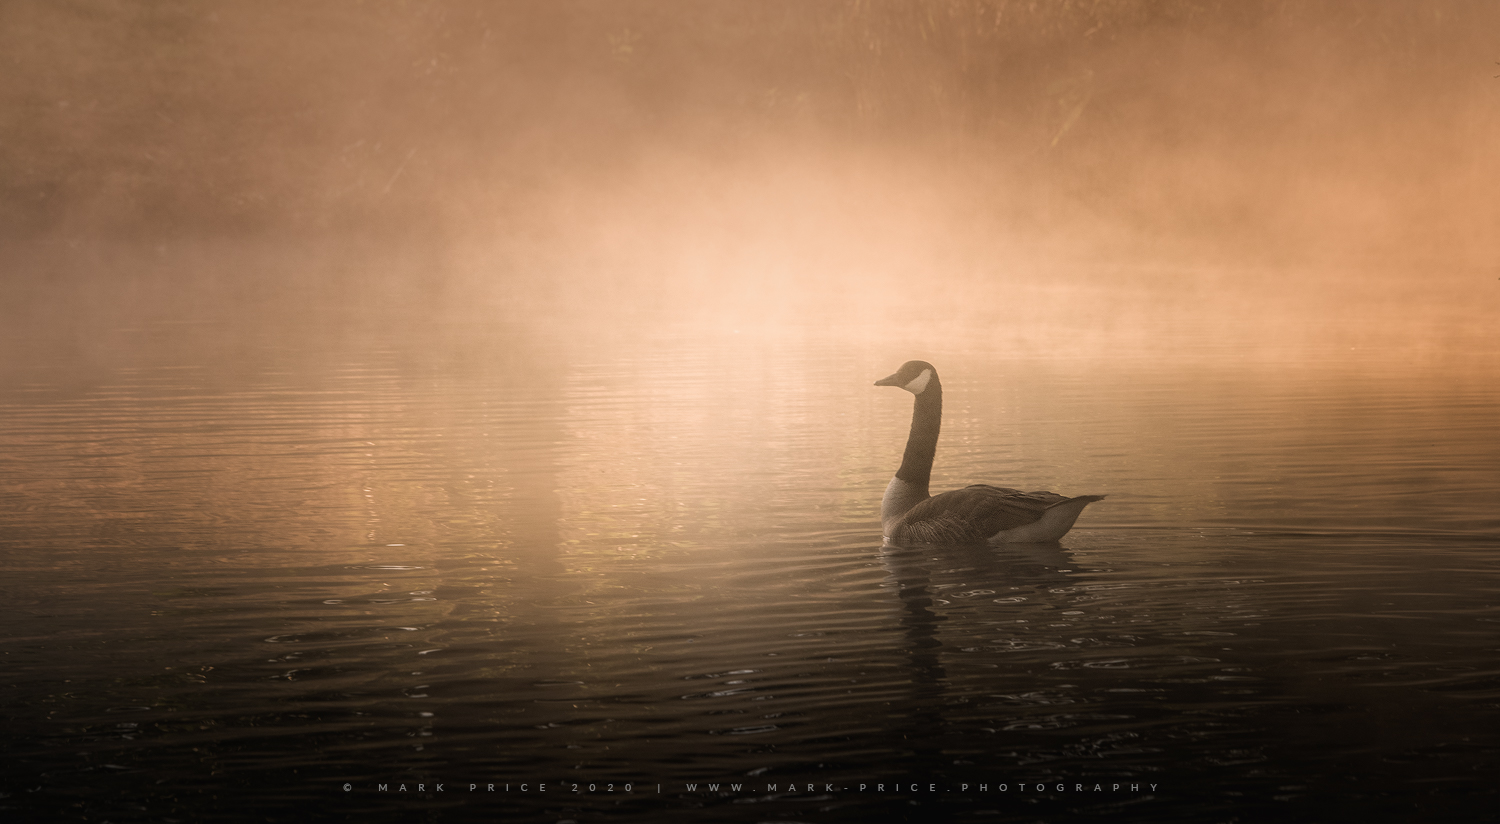 A beautiful bird glides across the water of a Sussex Lake